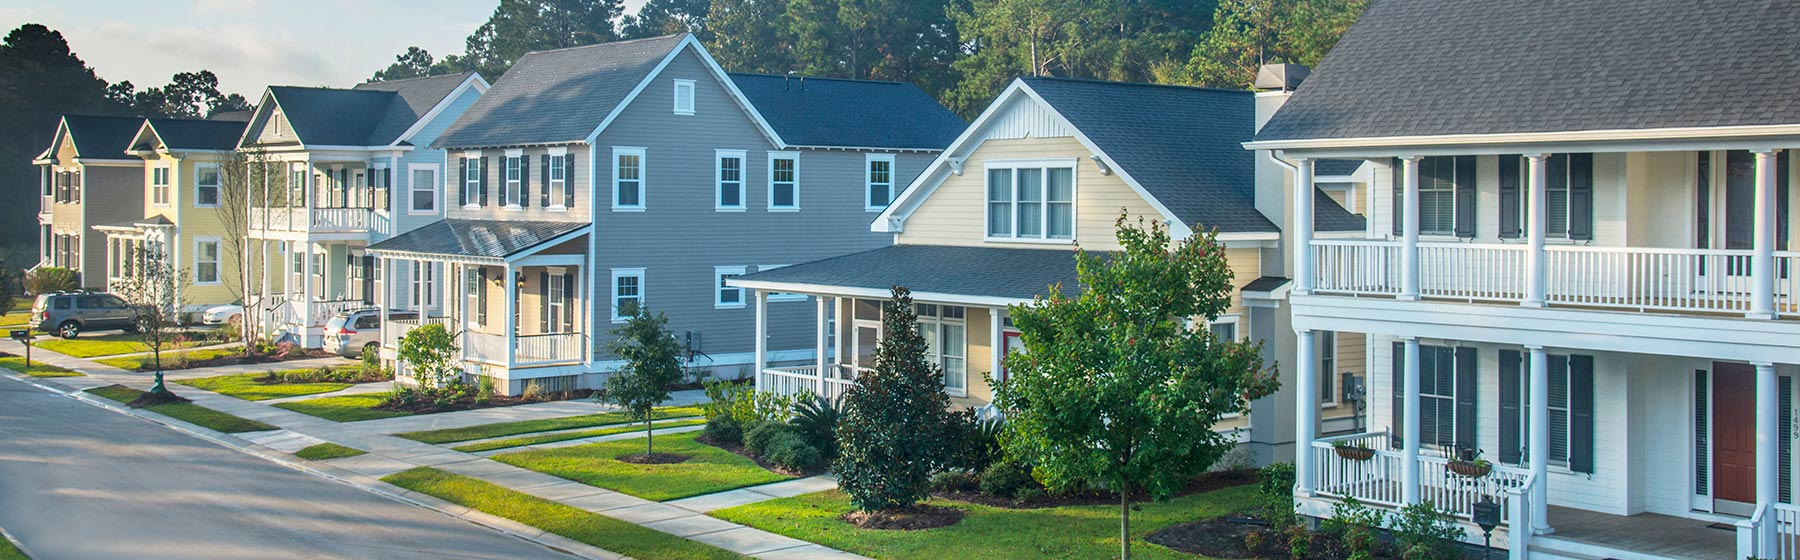 New Homes for Sale in Beautiful Charleston SC Community | Carolina Park